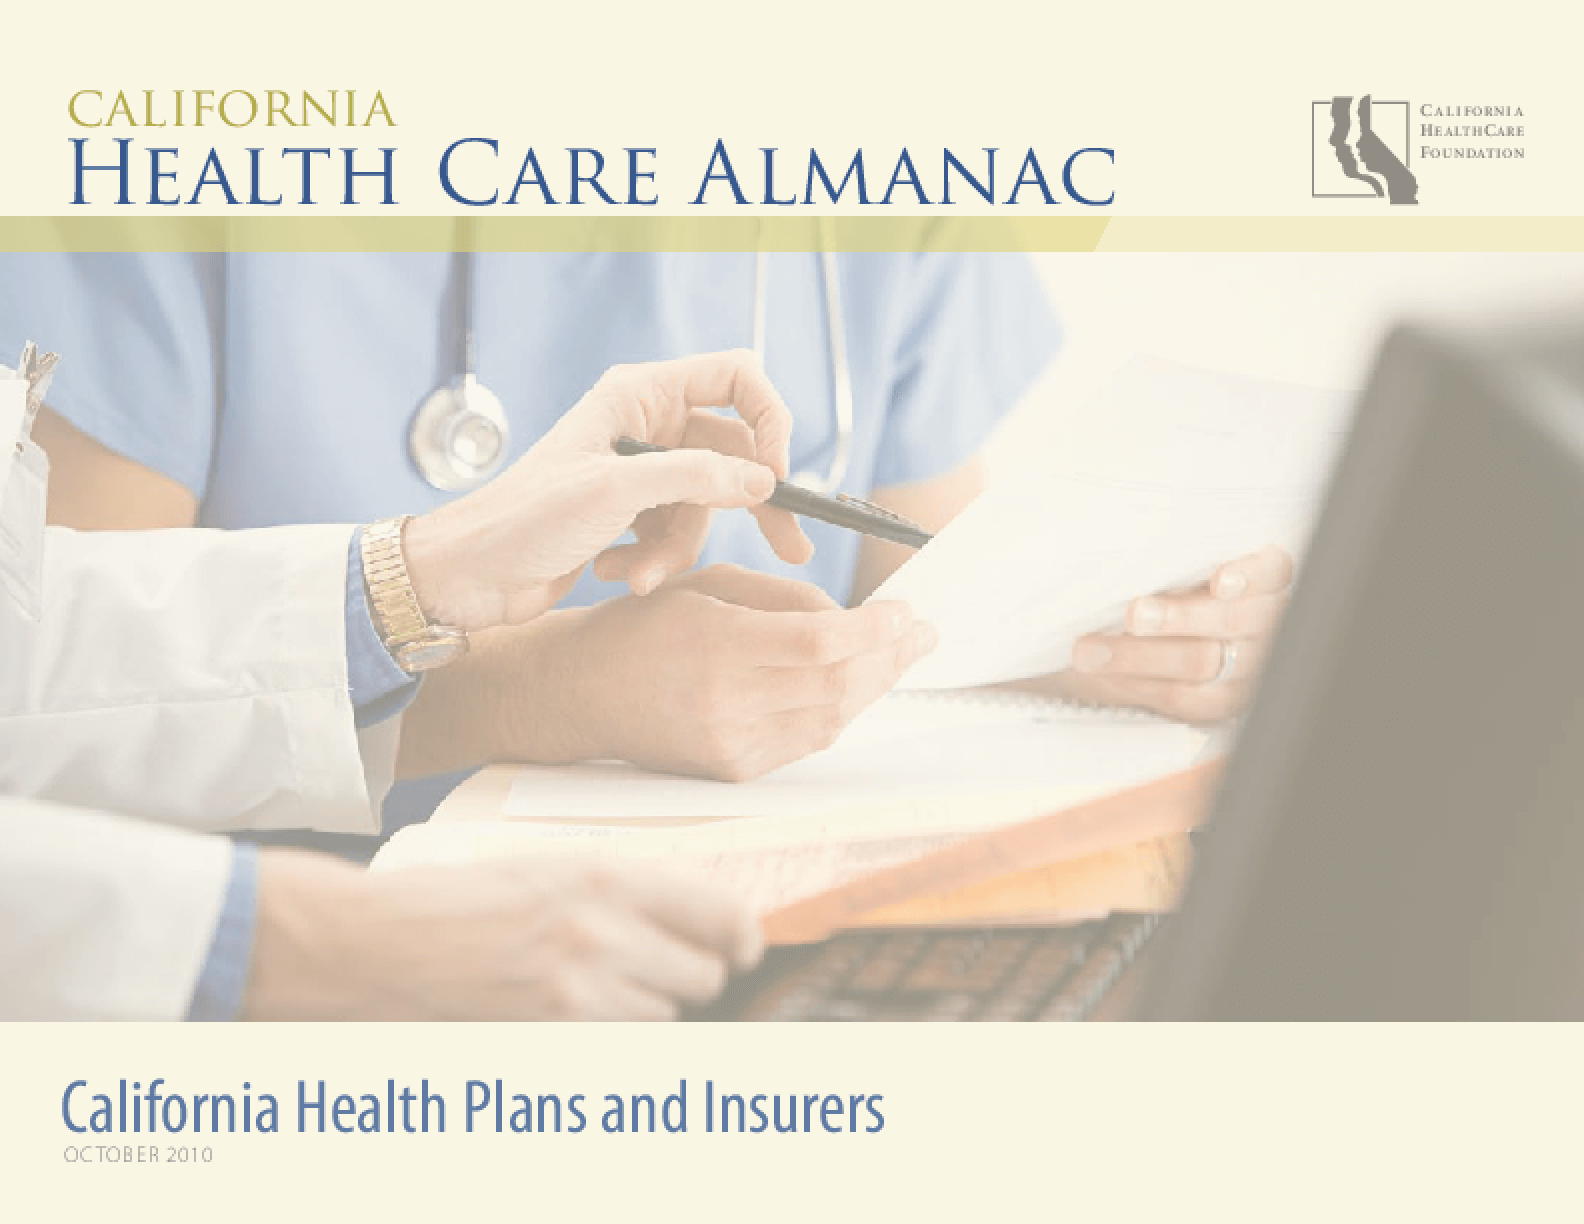 California Health Care Almanac: California Health Plans and Insurers